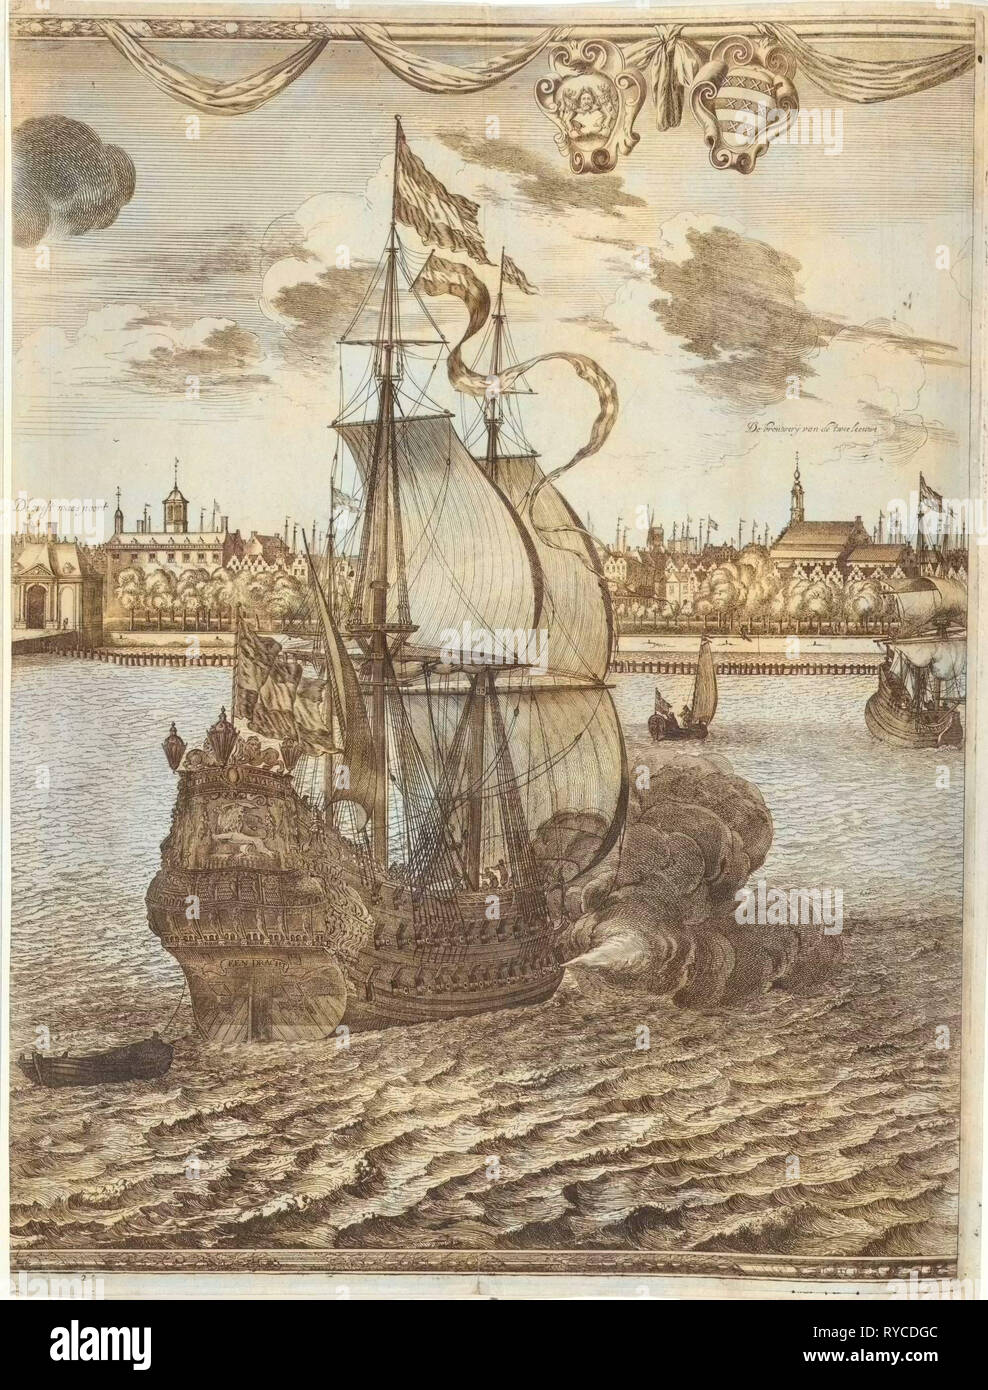 Panorama of Rotterdam, The Netherlands, print maker: attributed to Joost van Geel, Jan Houwens I, 1665 - Stock Image